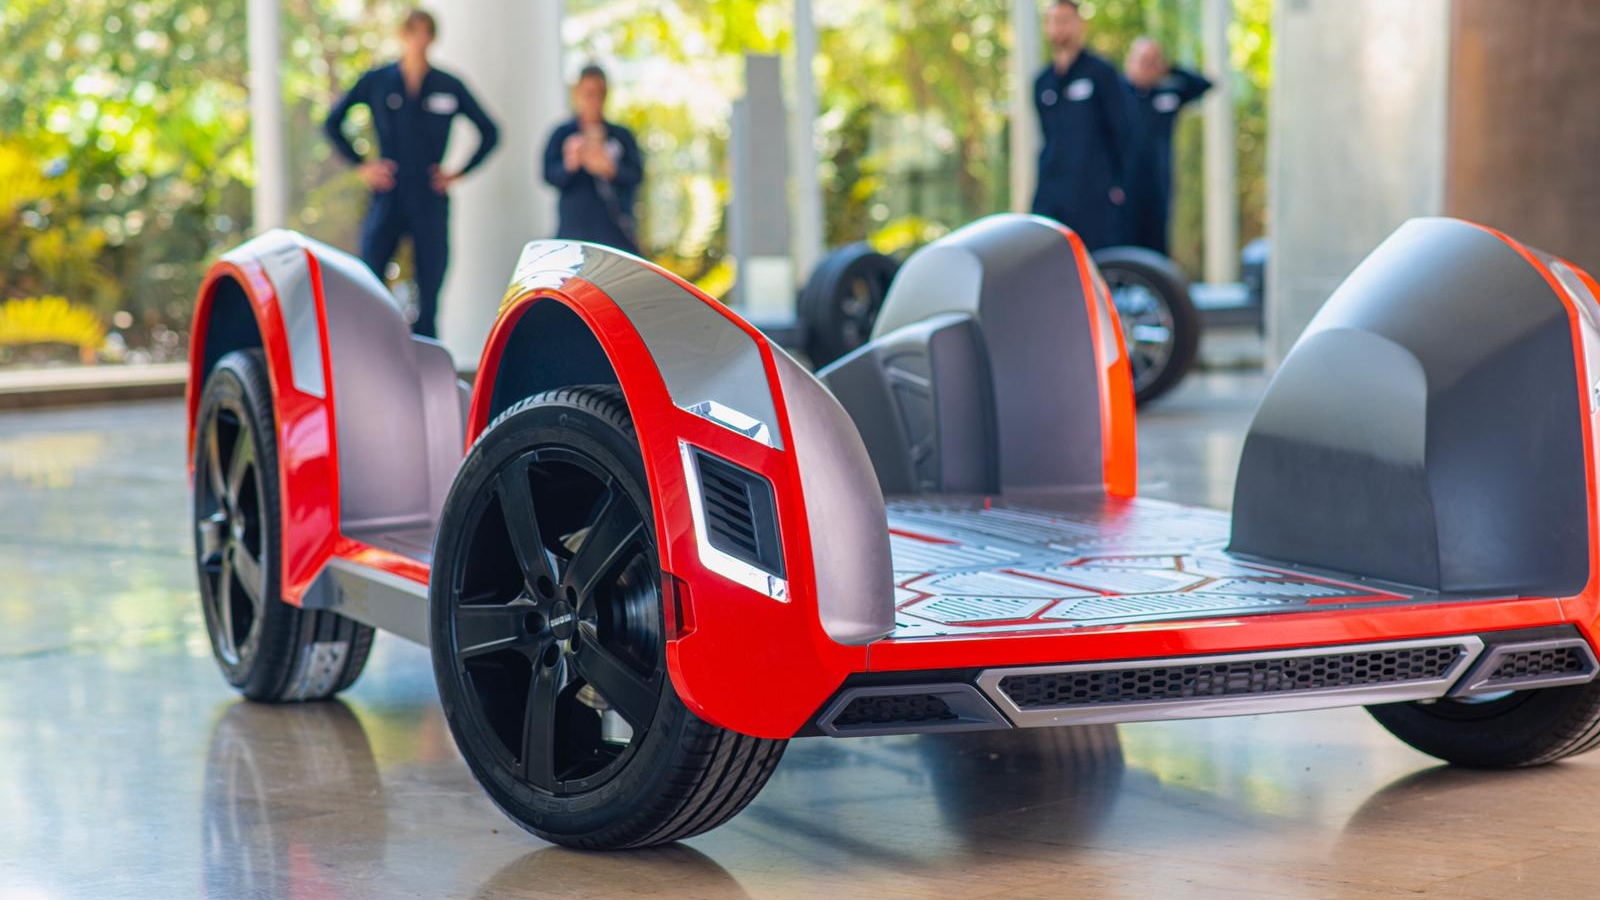 Build and brand your own electric car onto Ree's flat-packed modular chassis